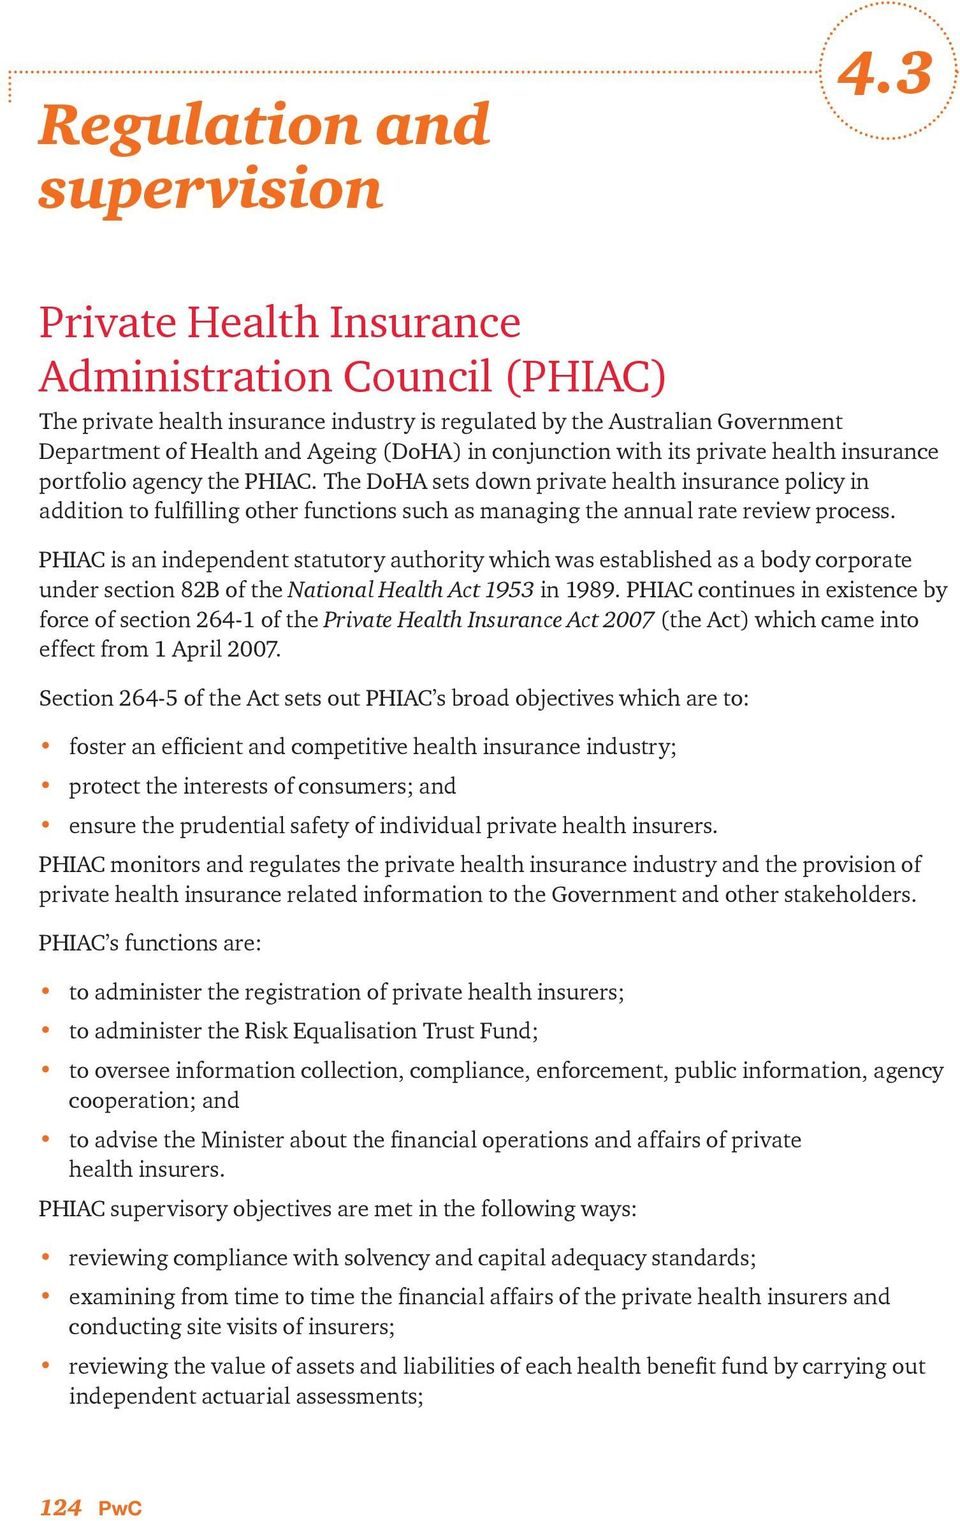 its private health insurance portfolio agency the PHIAC. The DoHA sets down private health insurance policy in addition to fulfilling other functions such as managing the annual rate review process.